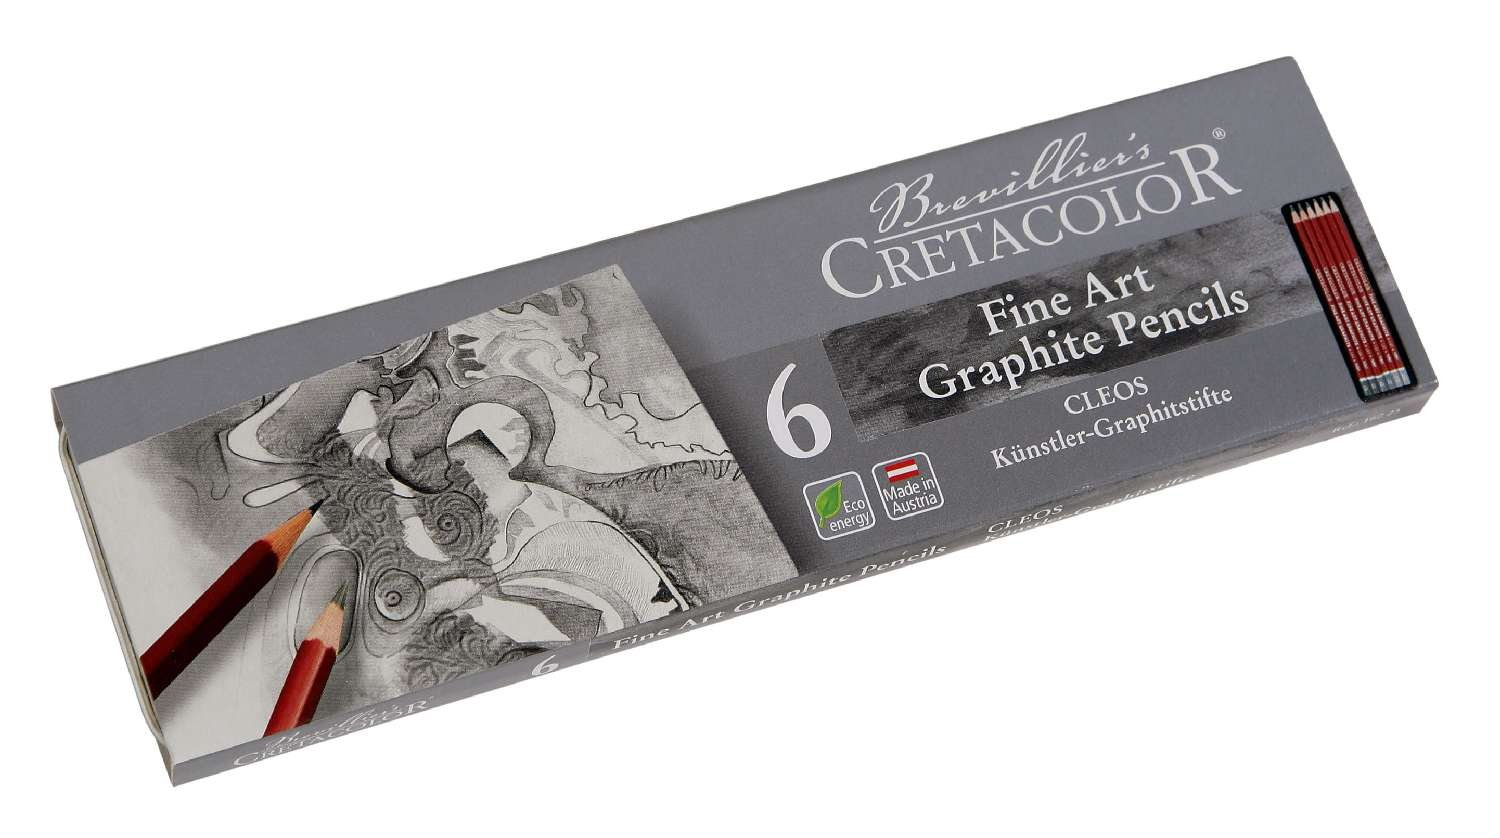 Cretacolor 160 25 – Fine Art Matite in grafite, Pocket Set, 6 pezzi 160 25